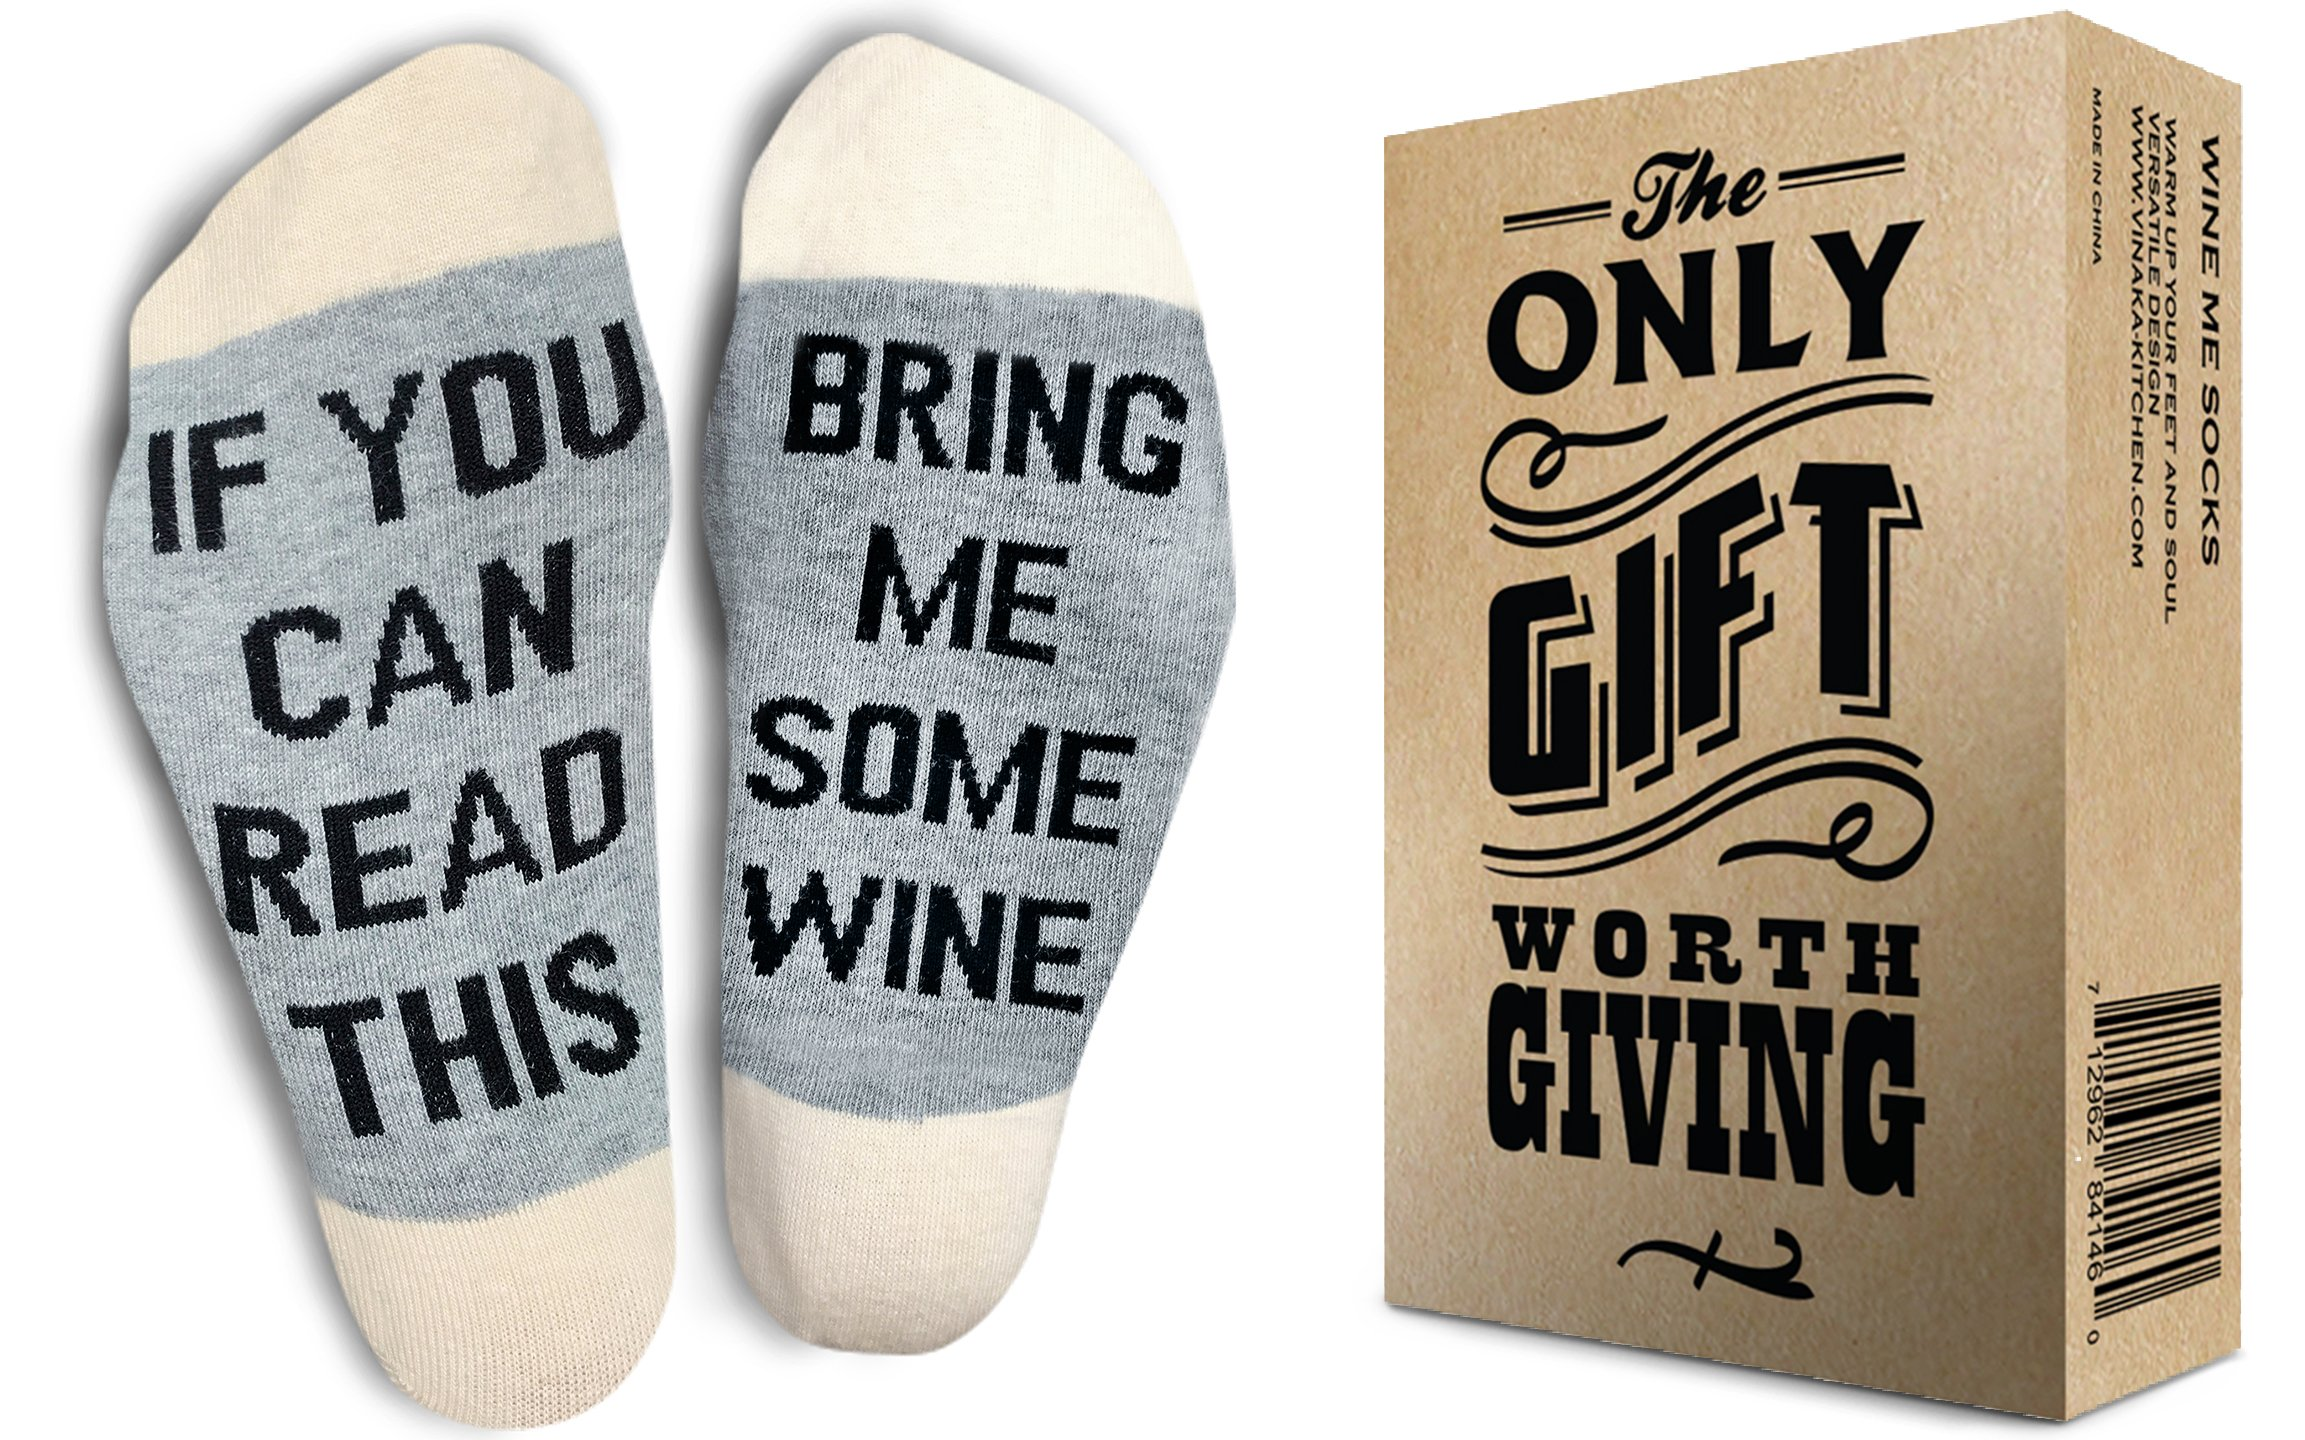 TheOnly Wine Gift Wine Socks - and Gift Box''If you can read this bring me some wine'' Perfect Christmas Gift for Wine Lovers, Birthdays, White Elephant, Mother Gift, Wife or Best Friend Wine Socks by The Only Gift Worth Giving (Image #2)